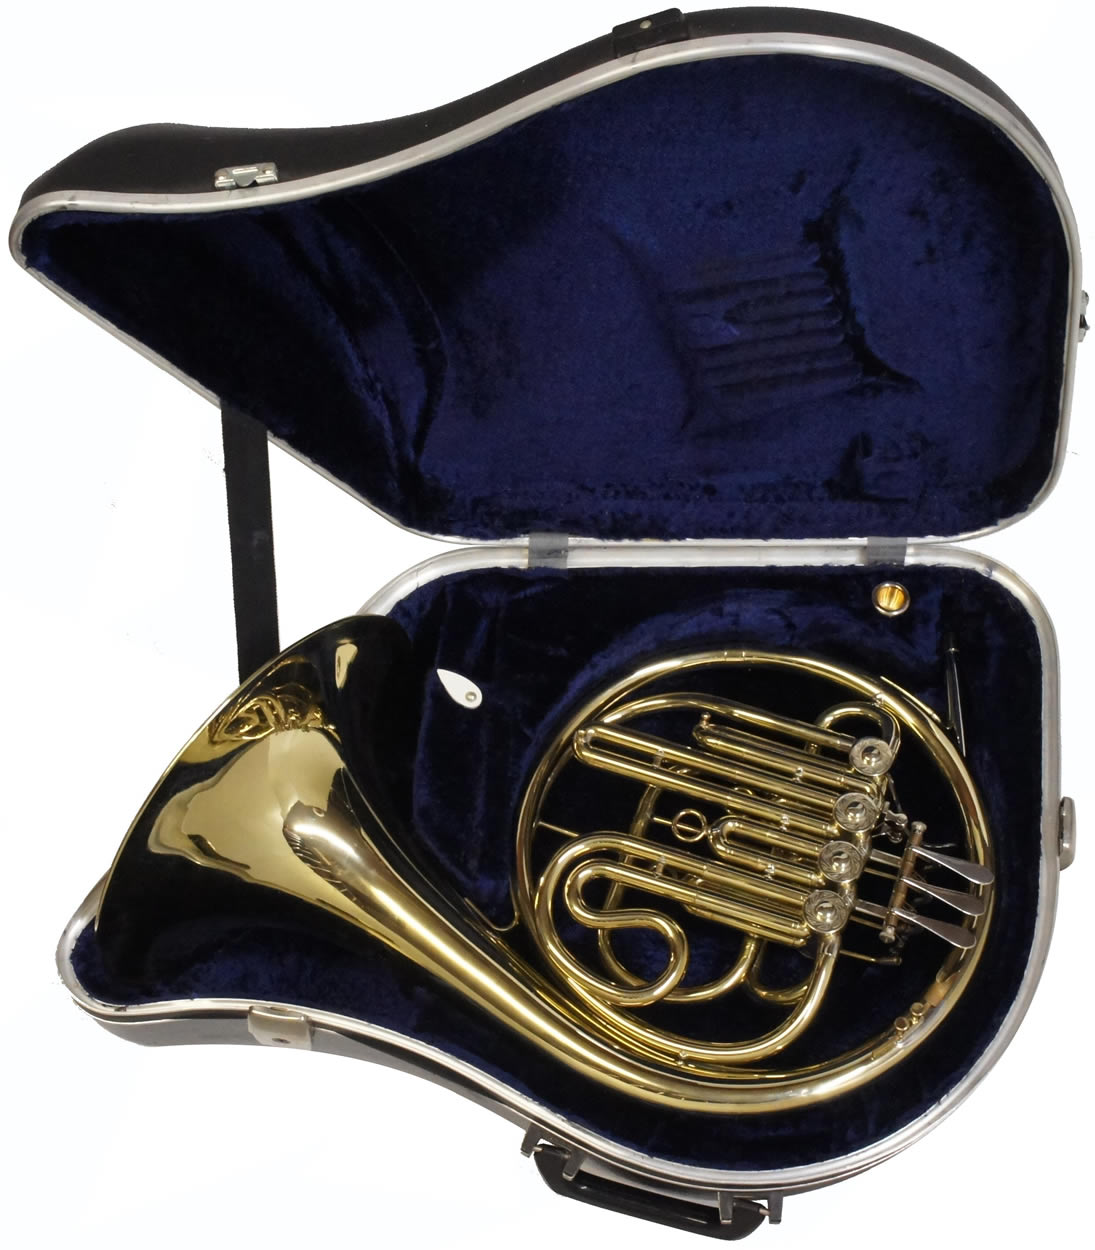 Second Hand B&H 400 French Horn